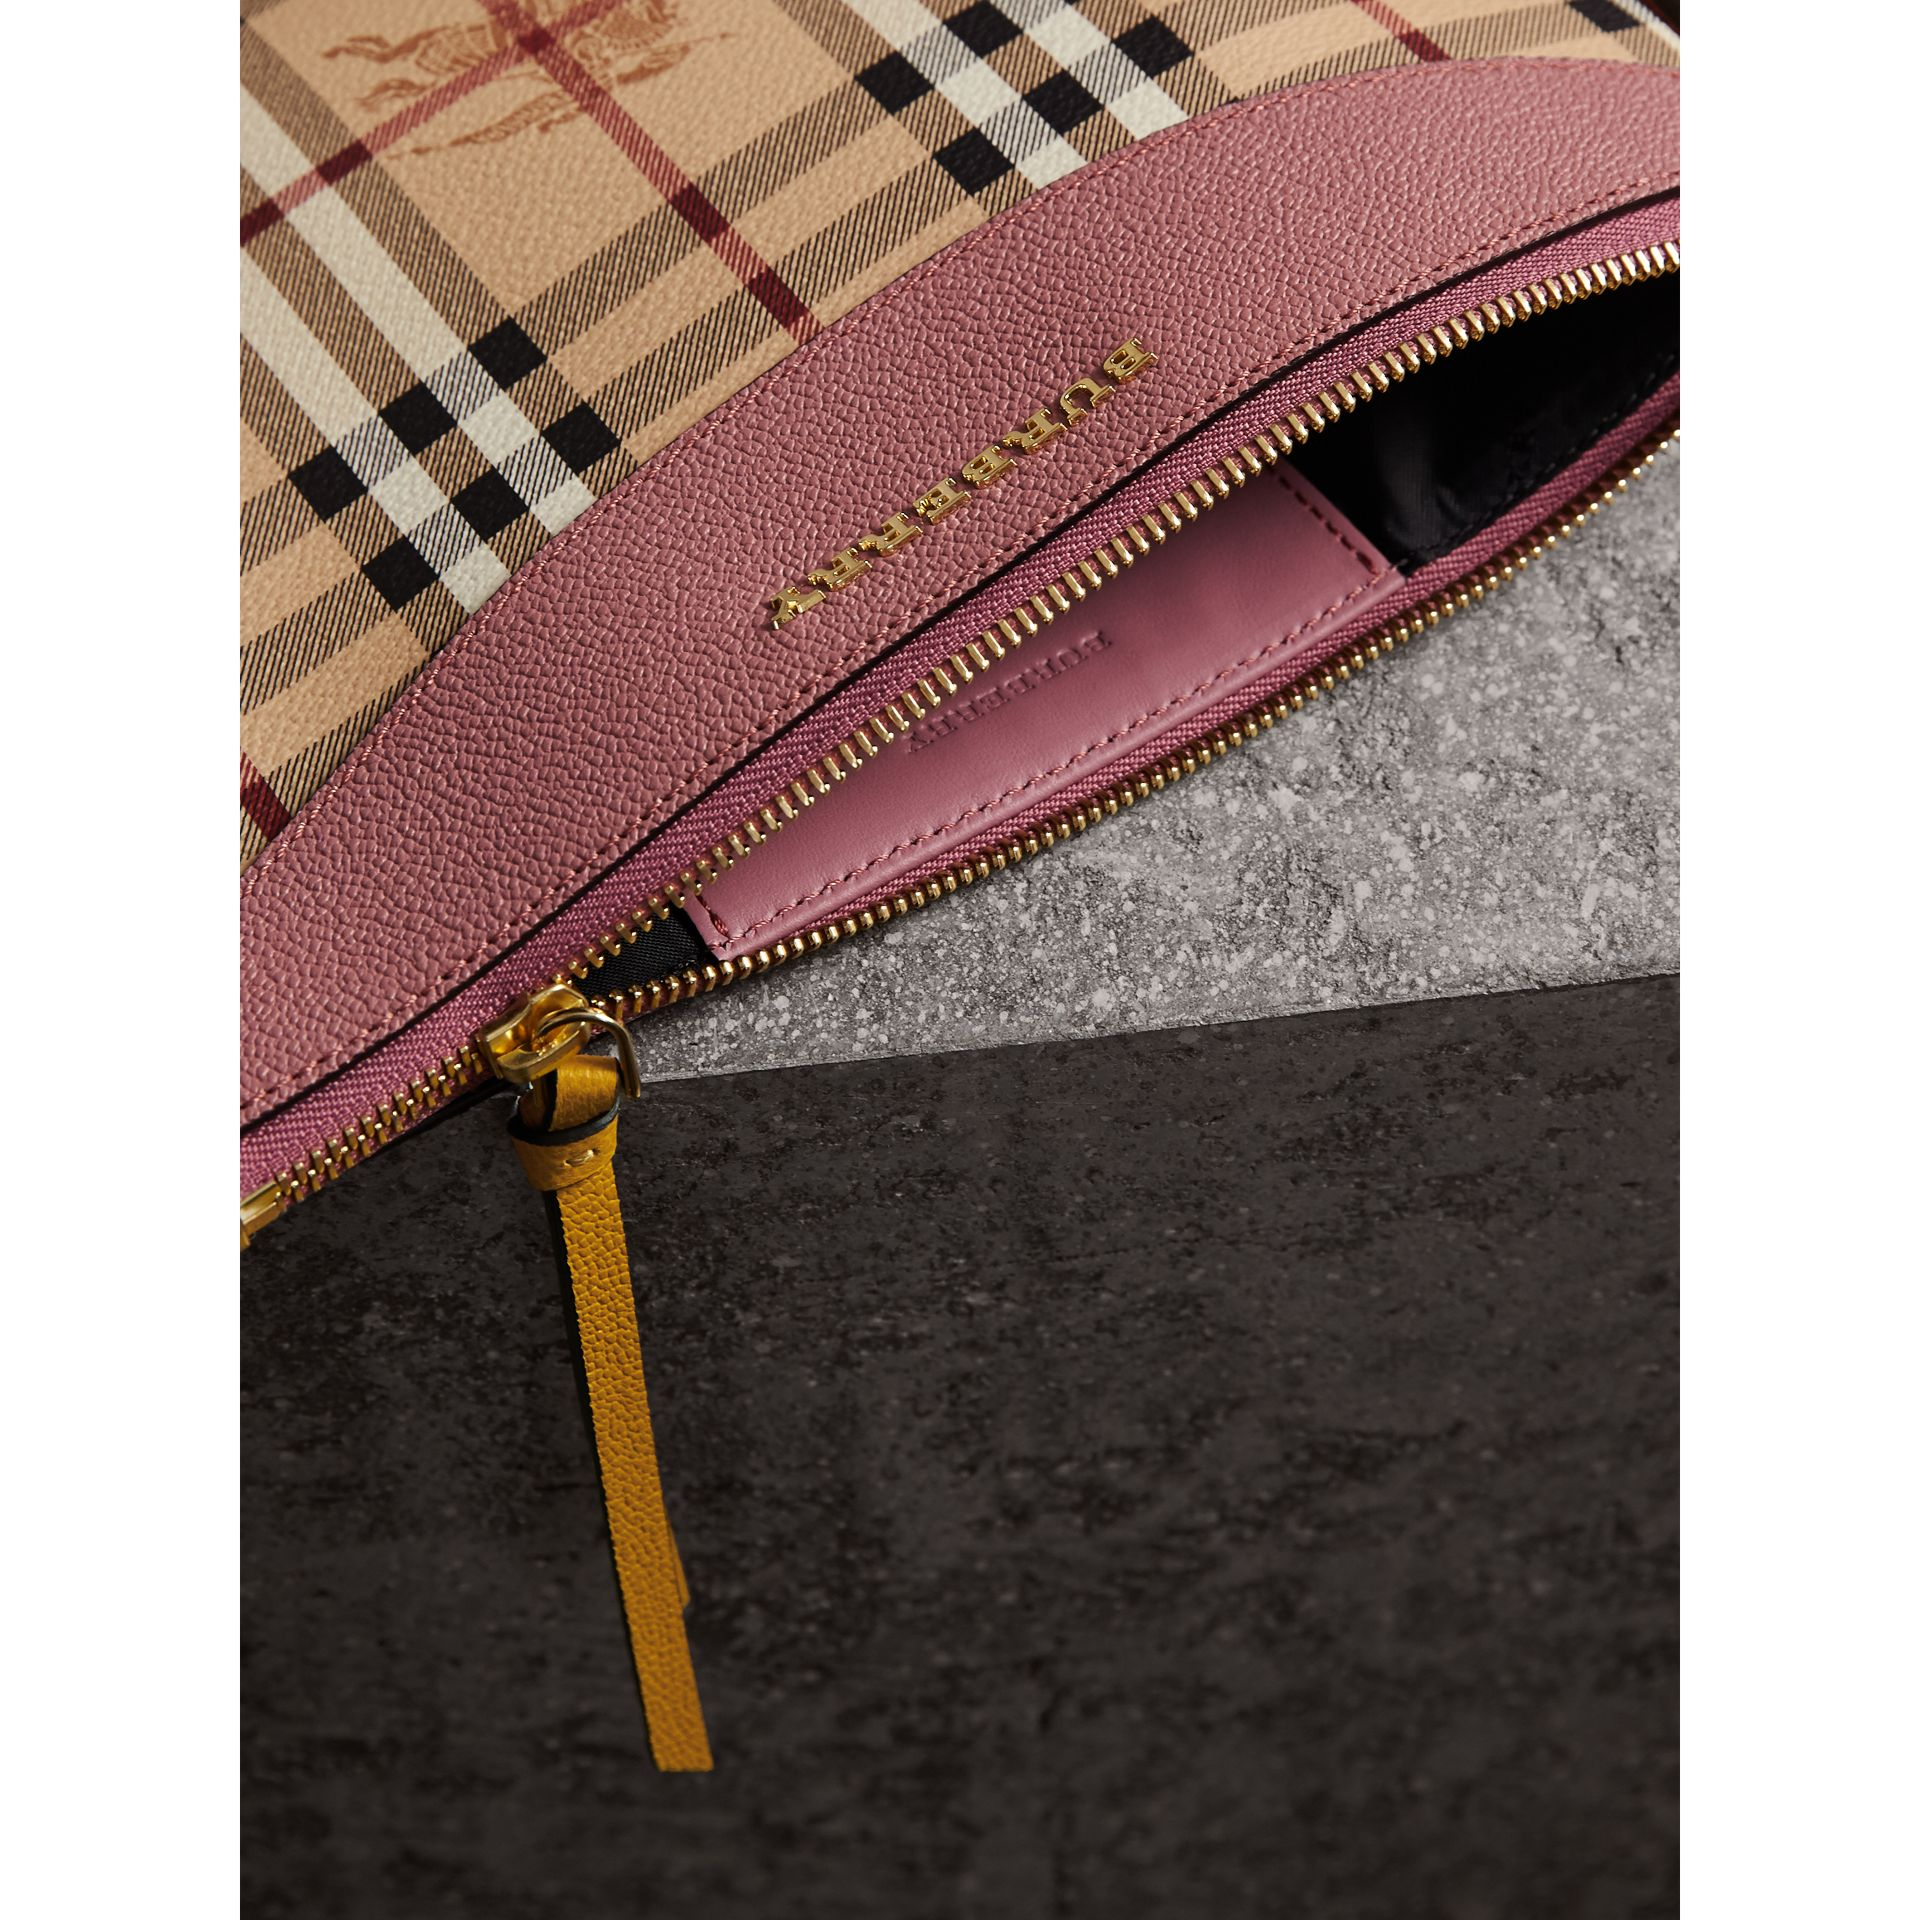 Haymarket Check and Two-tone Leather Clutch Bag in Dusty Pink/multicolour - Women | Burberry Hong Kong - gallery image 6